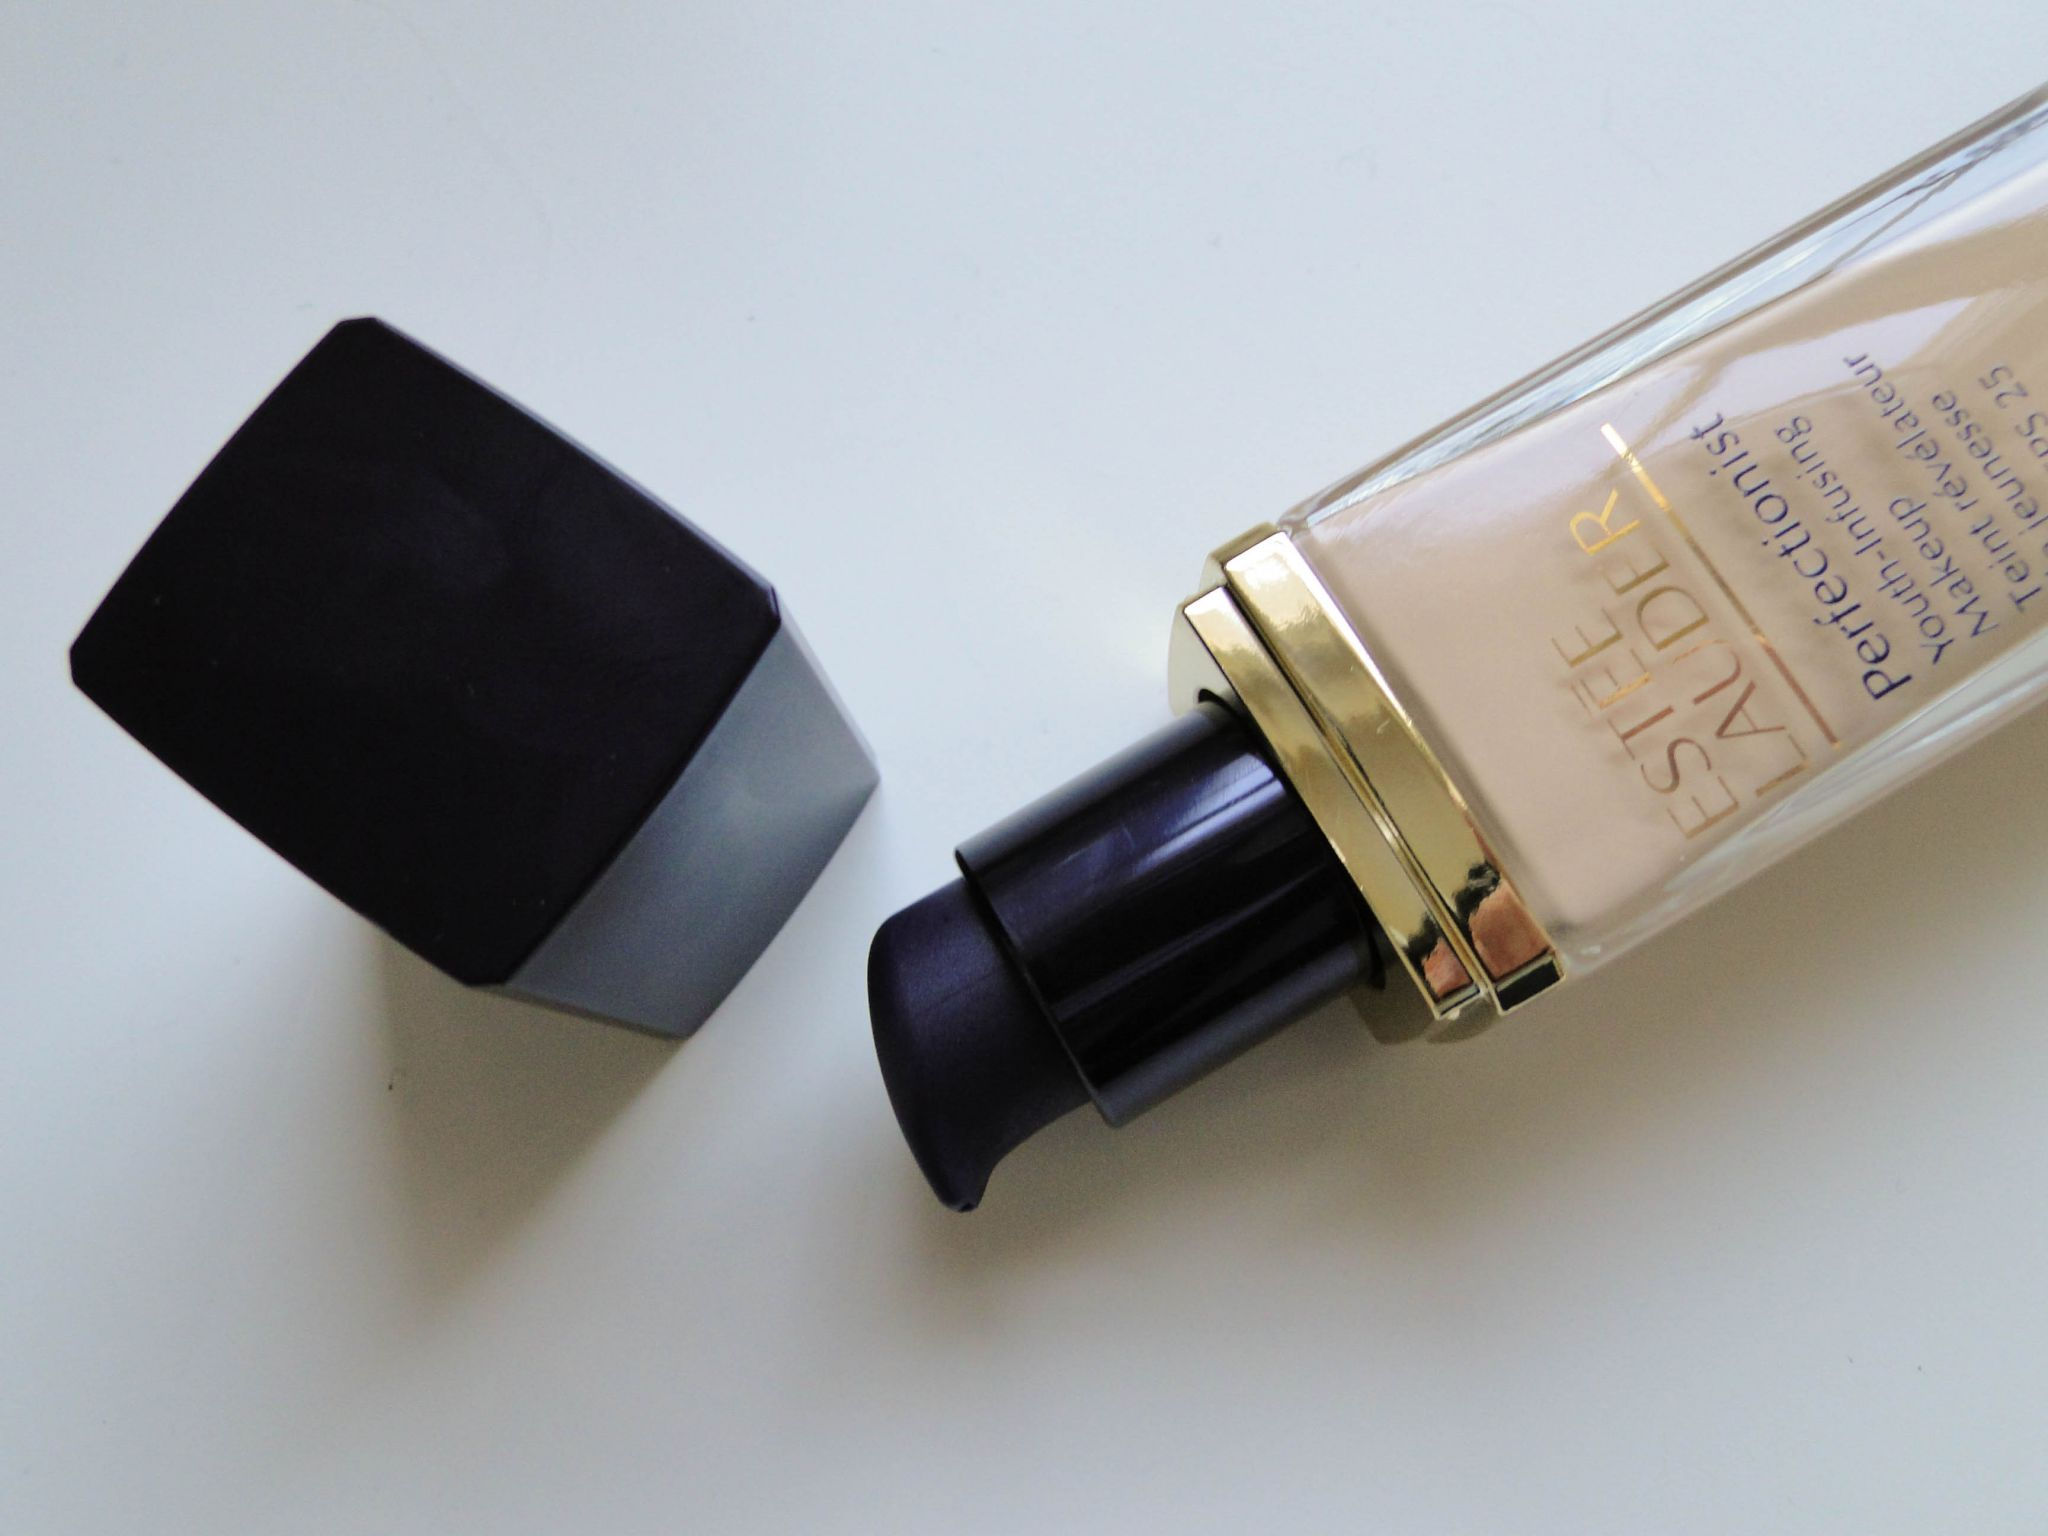 Estee Lauder Perfectionist Foundation-2